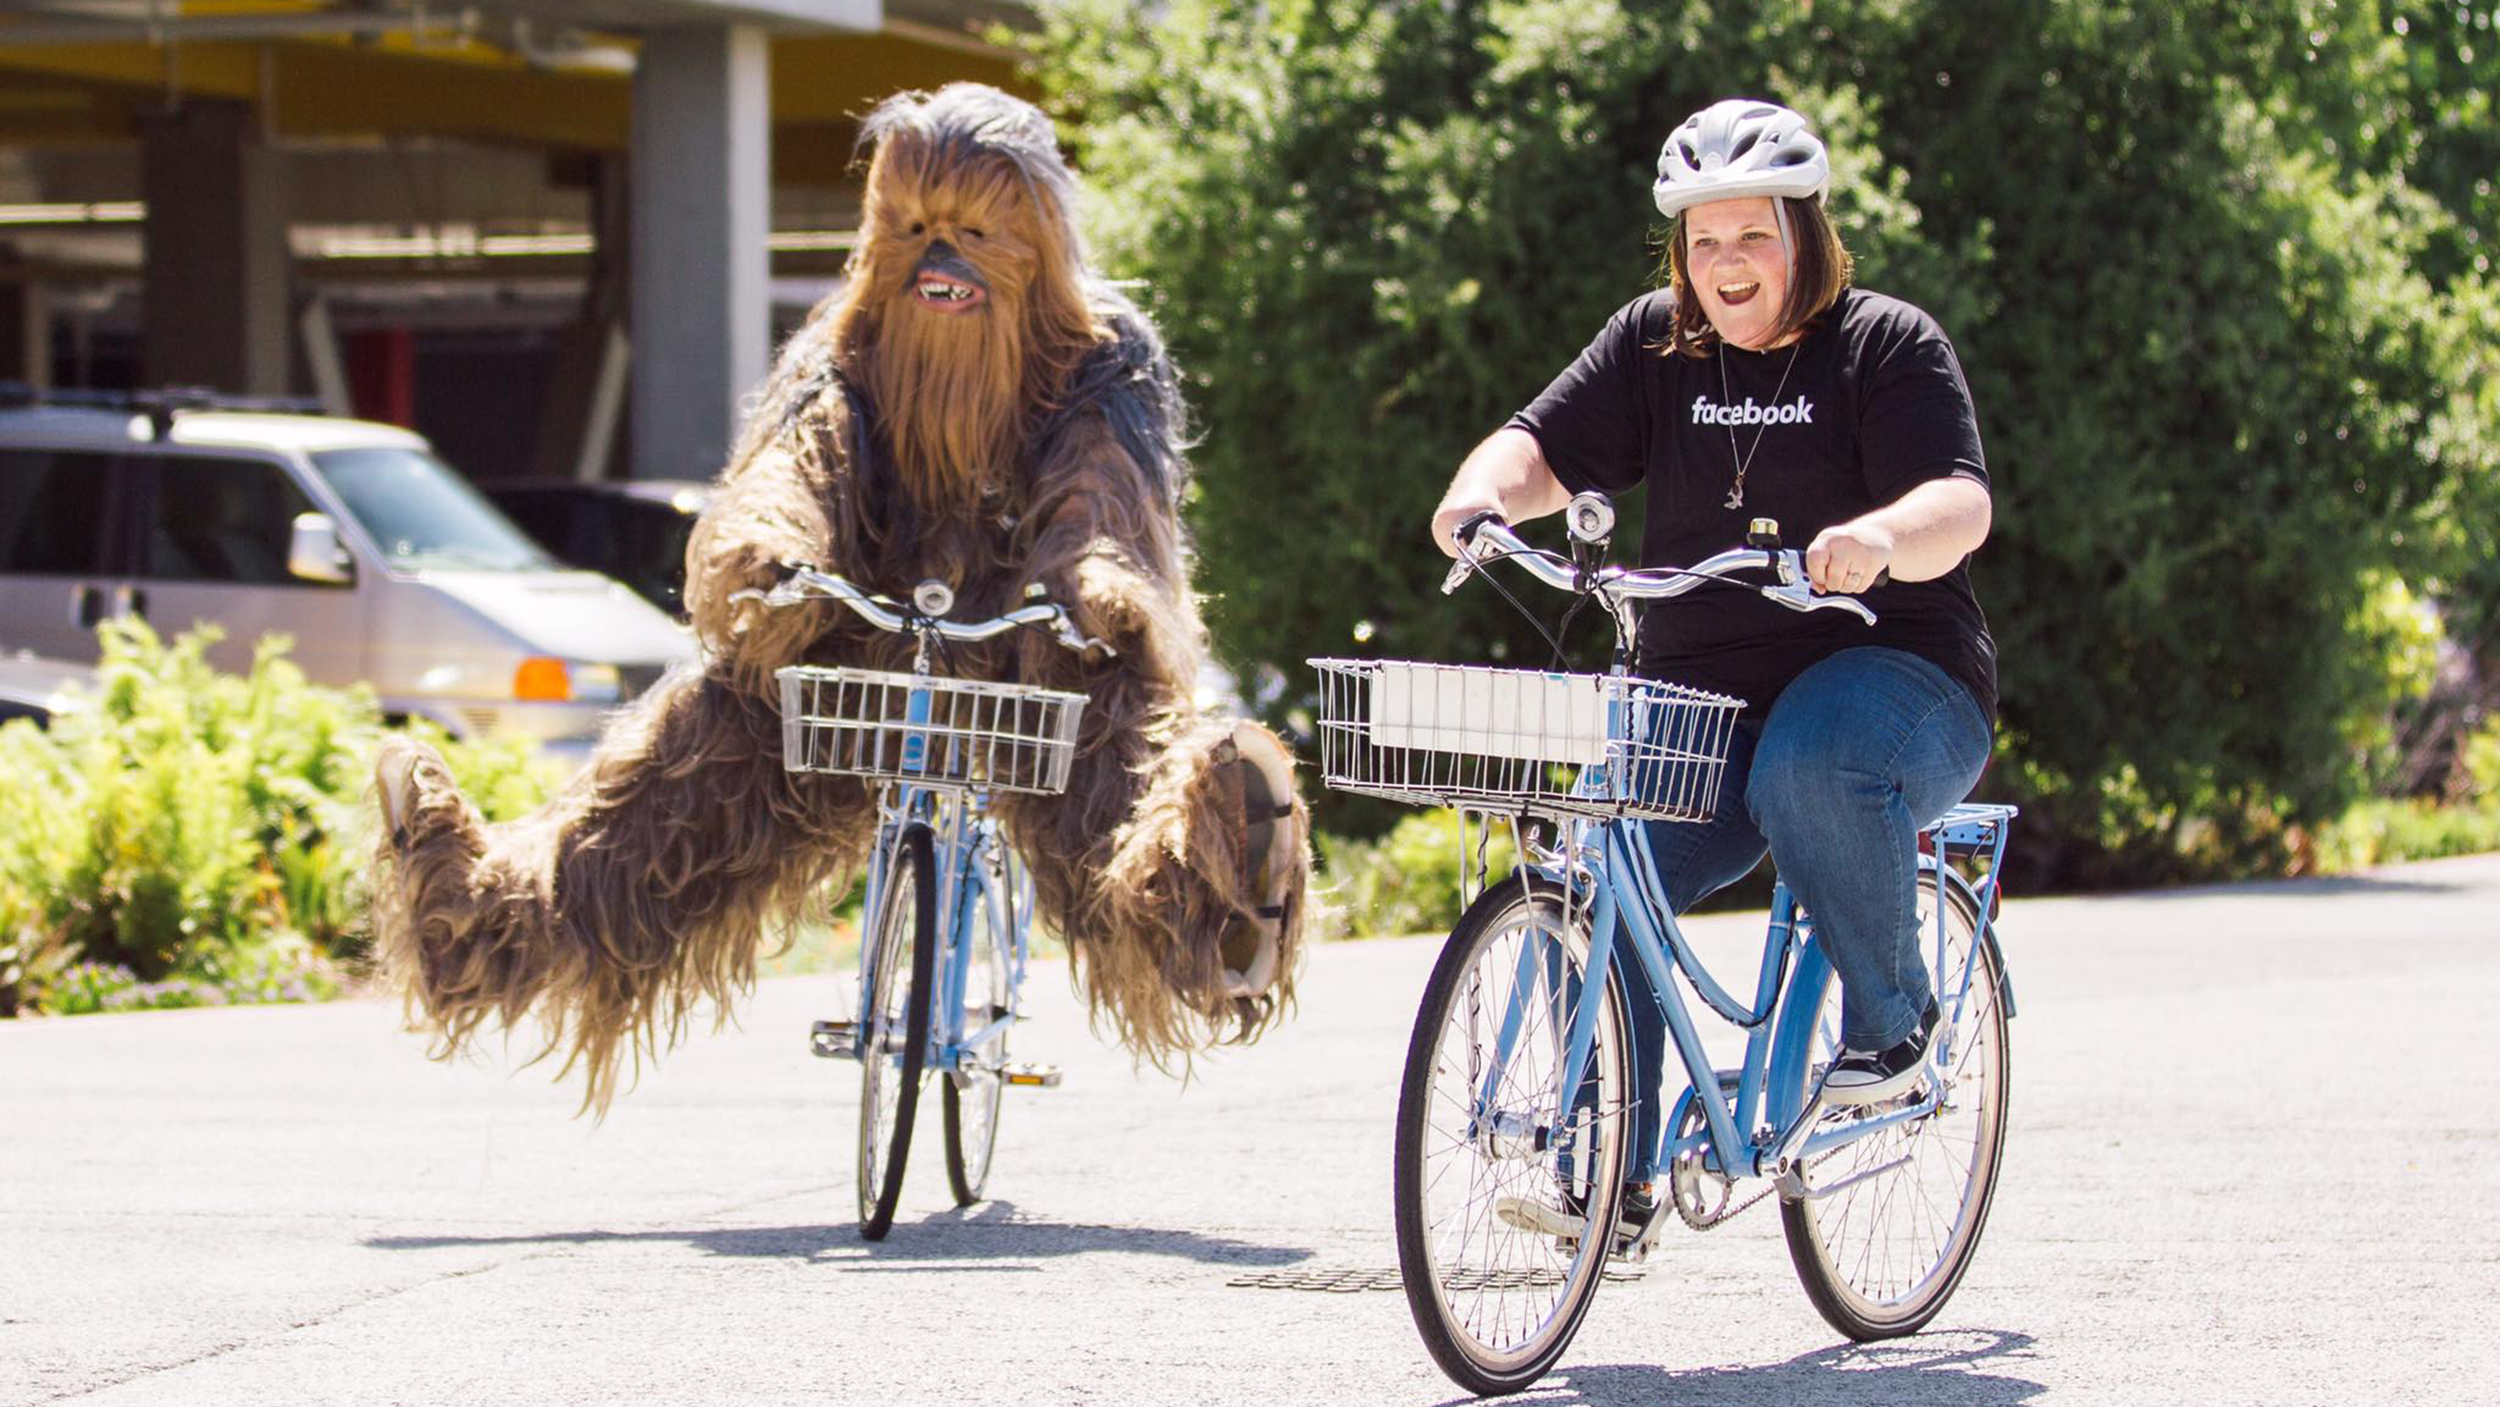 chewbacca mom' visits facebook, gets wookiee surprise - today